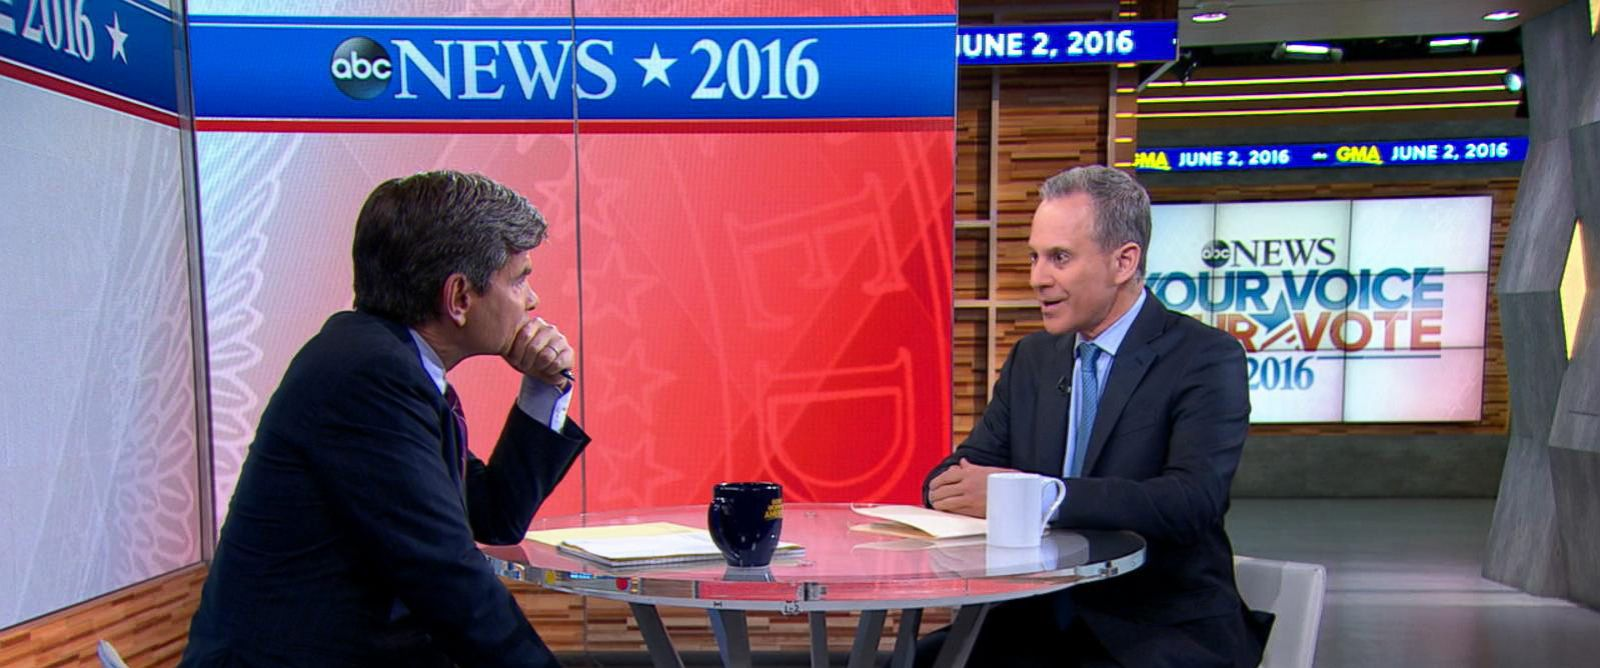 """PHOTO: George Stephanopoulos speaks to New York Attorney General Eric Schneiderman on """"Good Morning America,"""" June 2, 2016."""